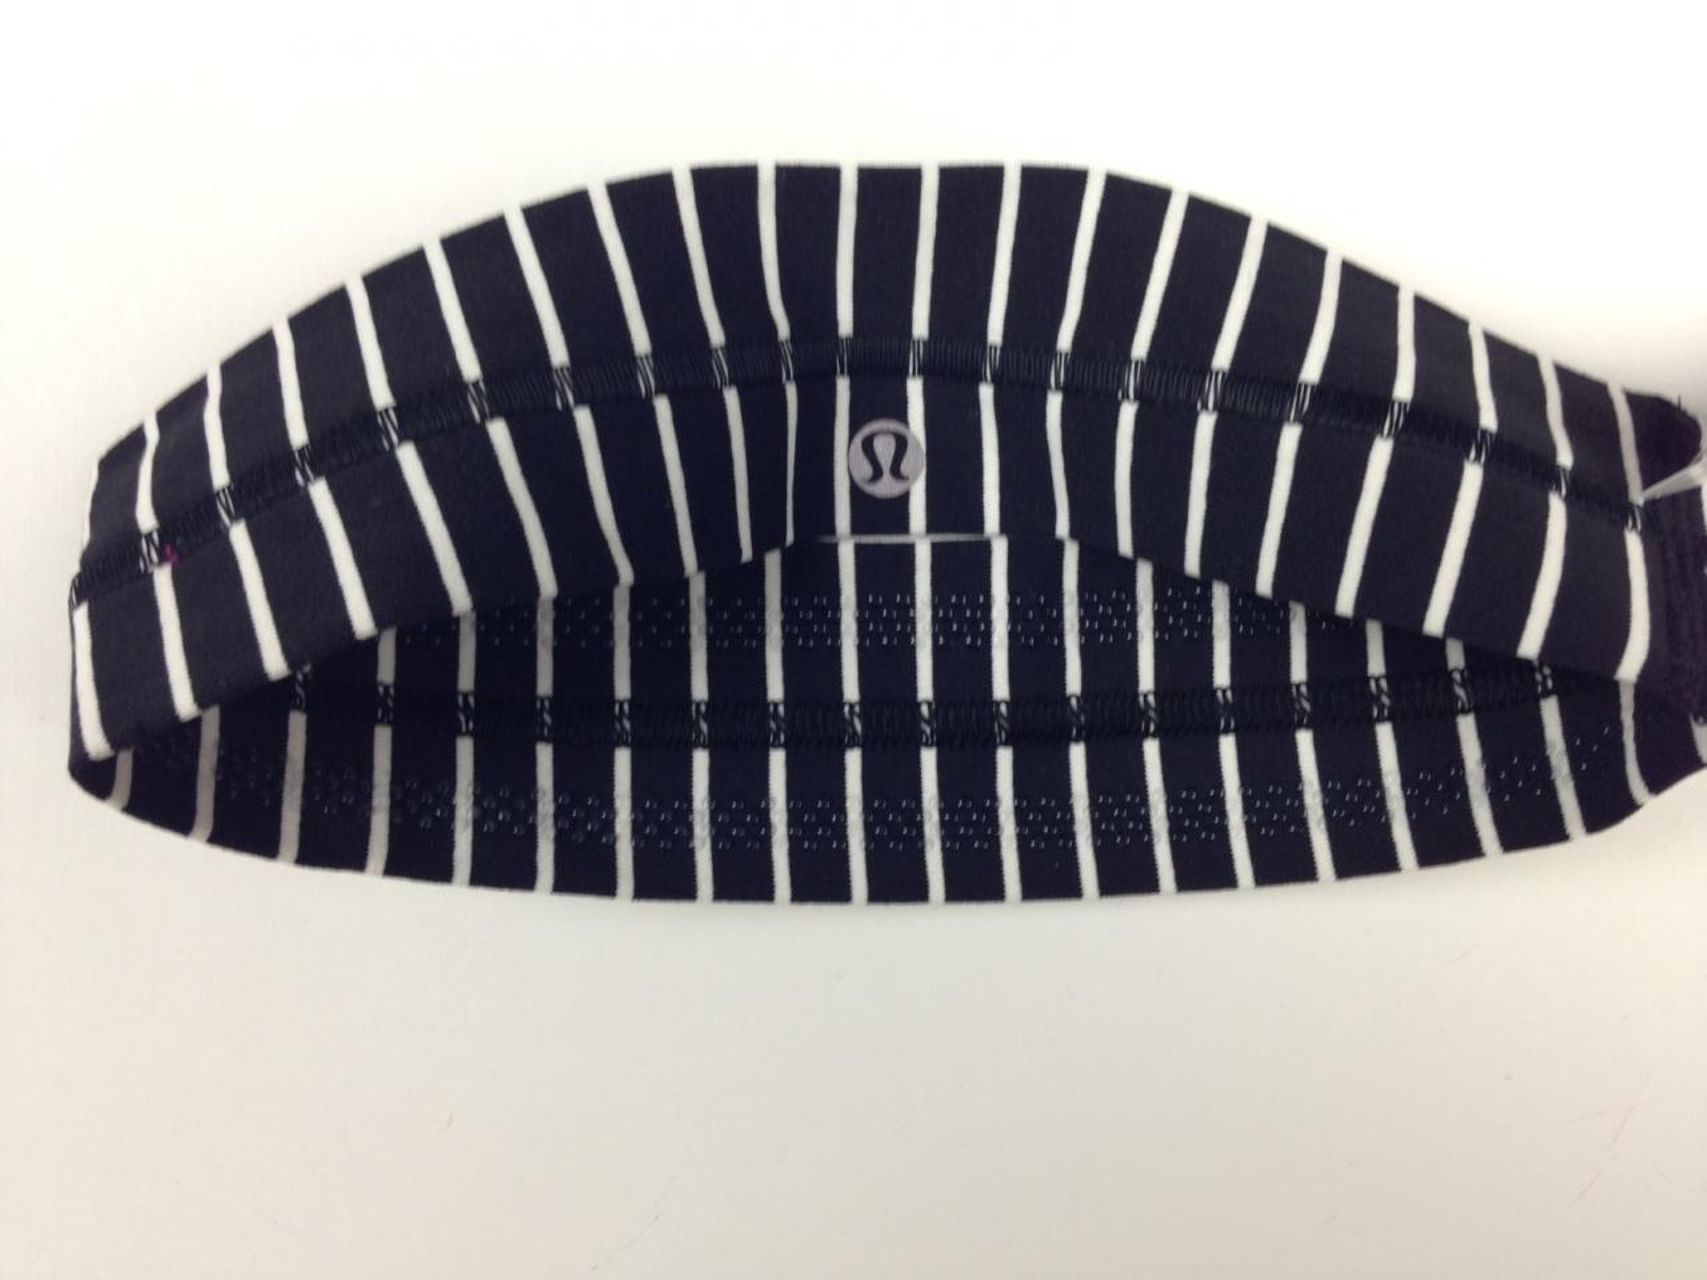 Lululemon Fly Away Tamer Headband - Parallel Stripe Black White